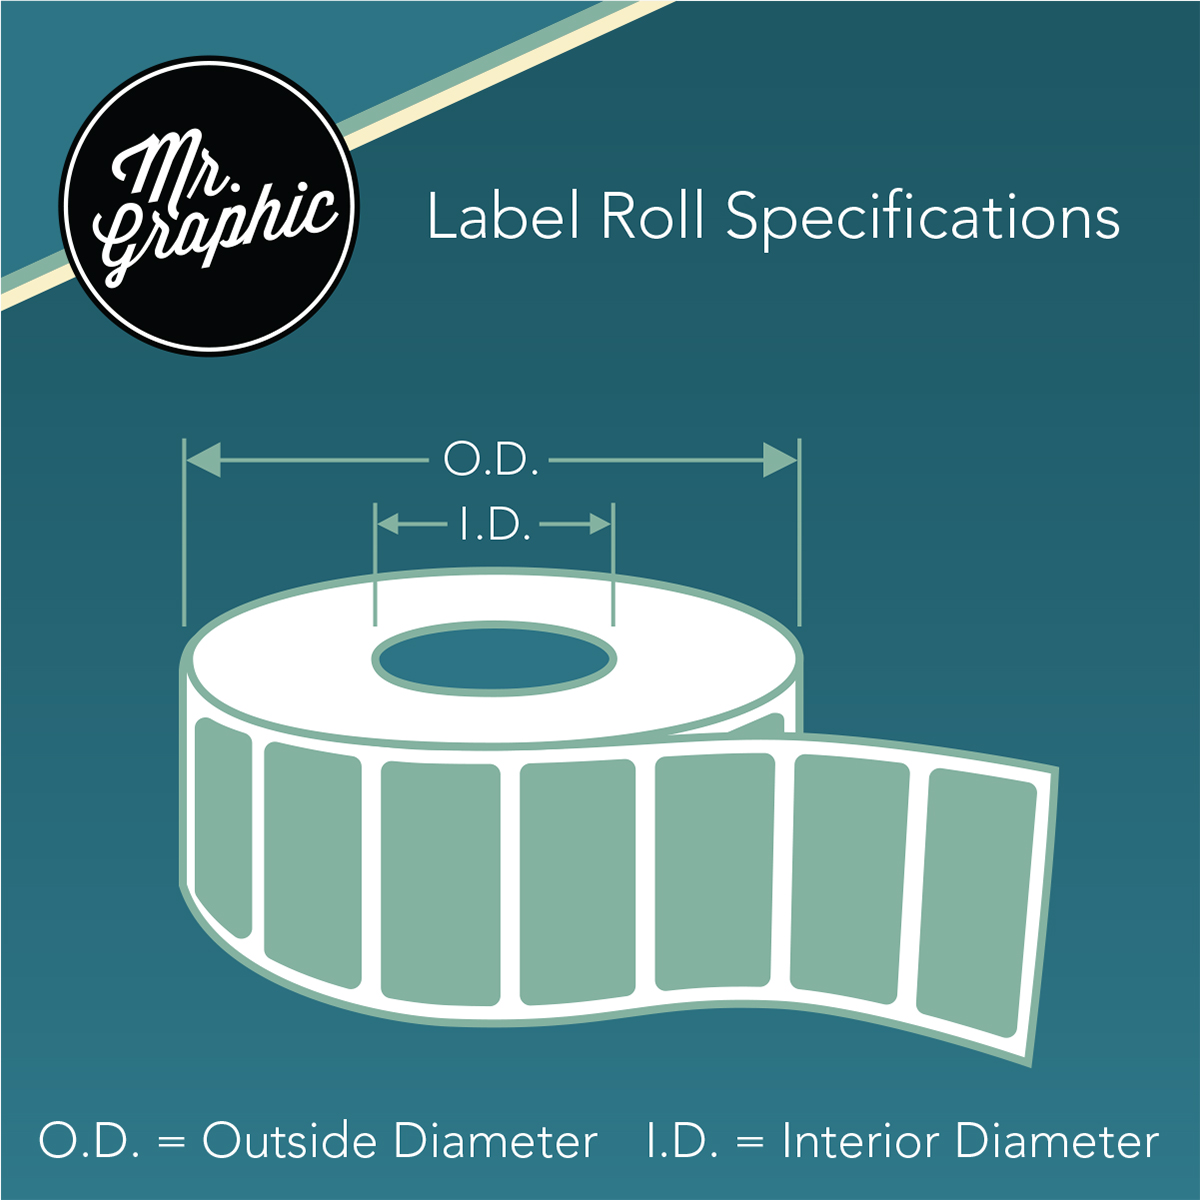 Label Roll Specifications